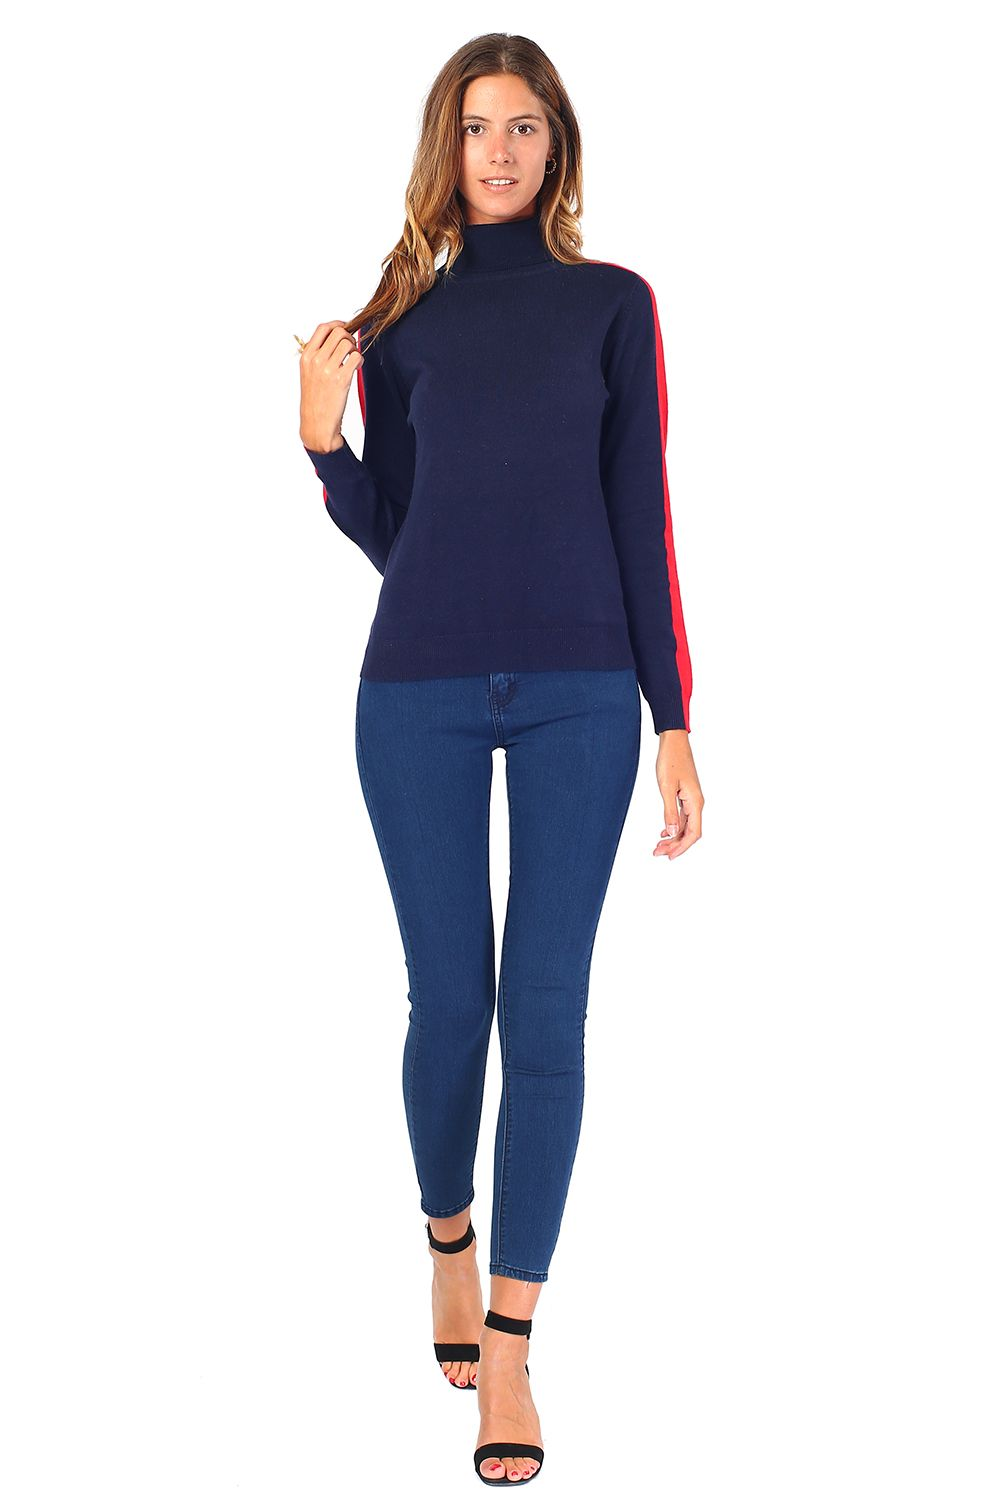 William De Faye Turtleneck Sweater with Two-tone Sleeves in Navy